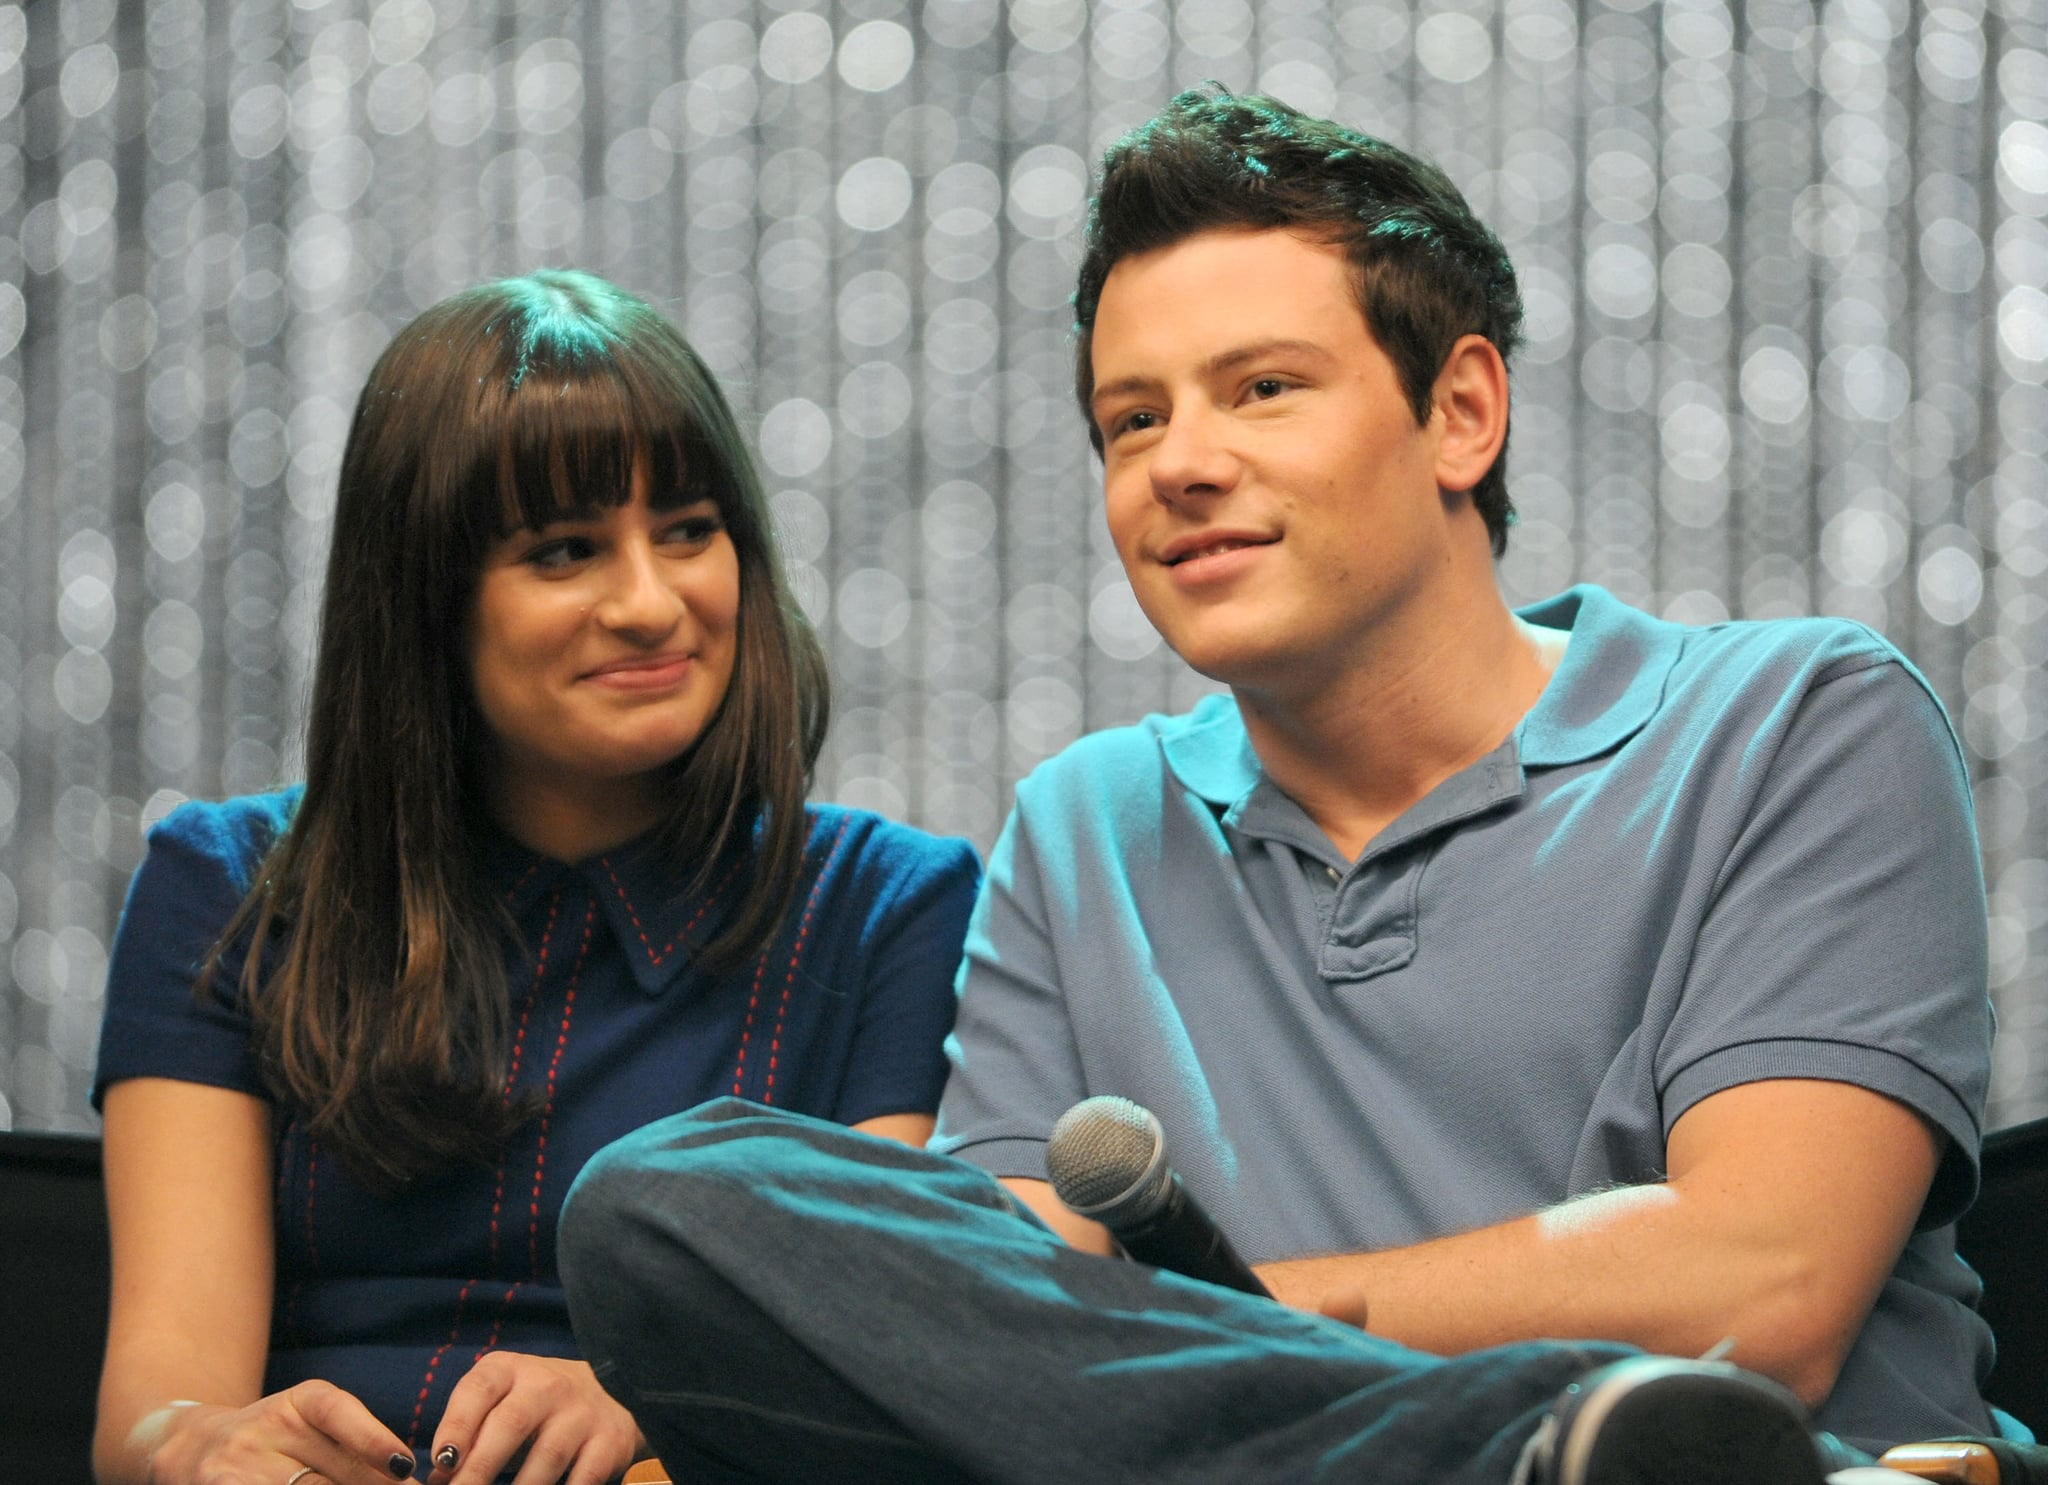 Lea Michele Honors Cory Monteith on 6-Year Anniversary of His Death